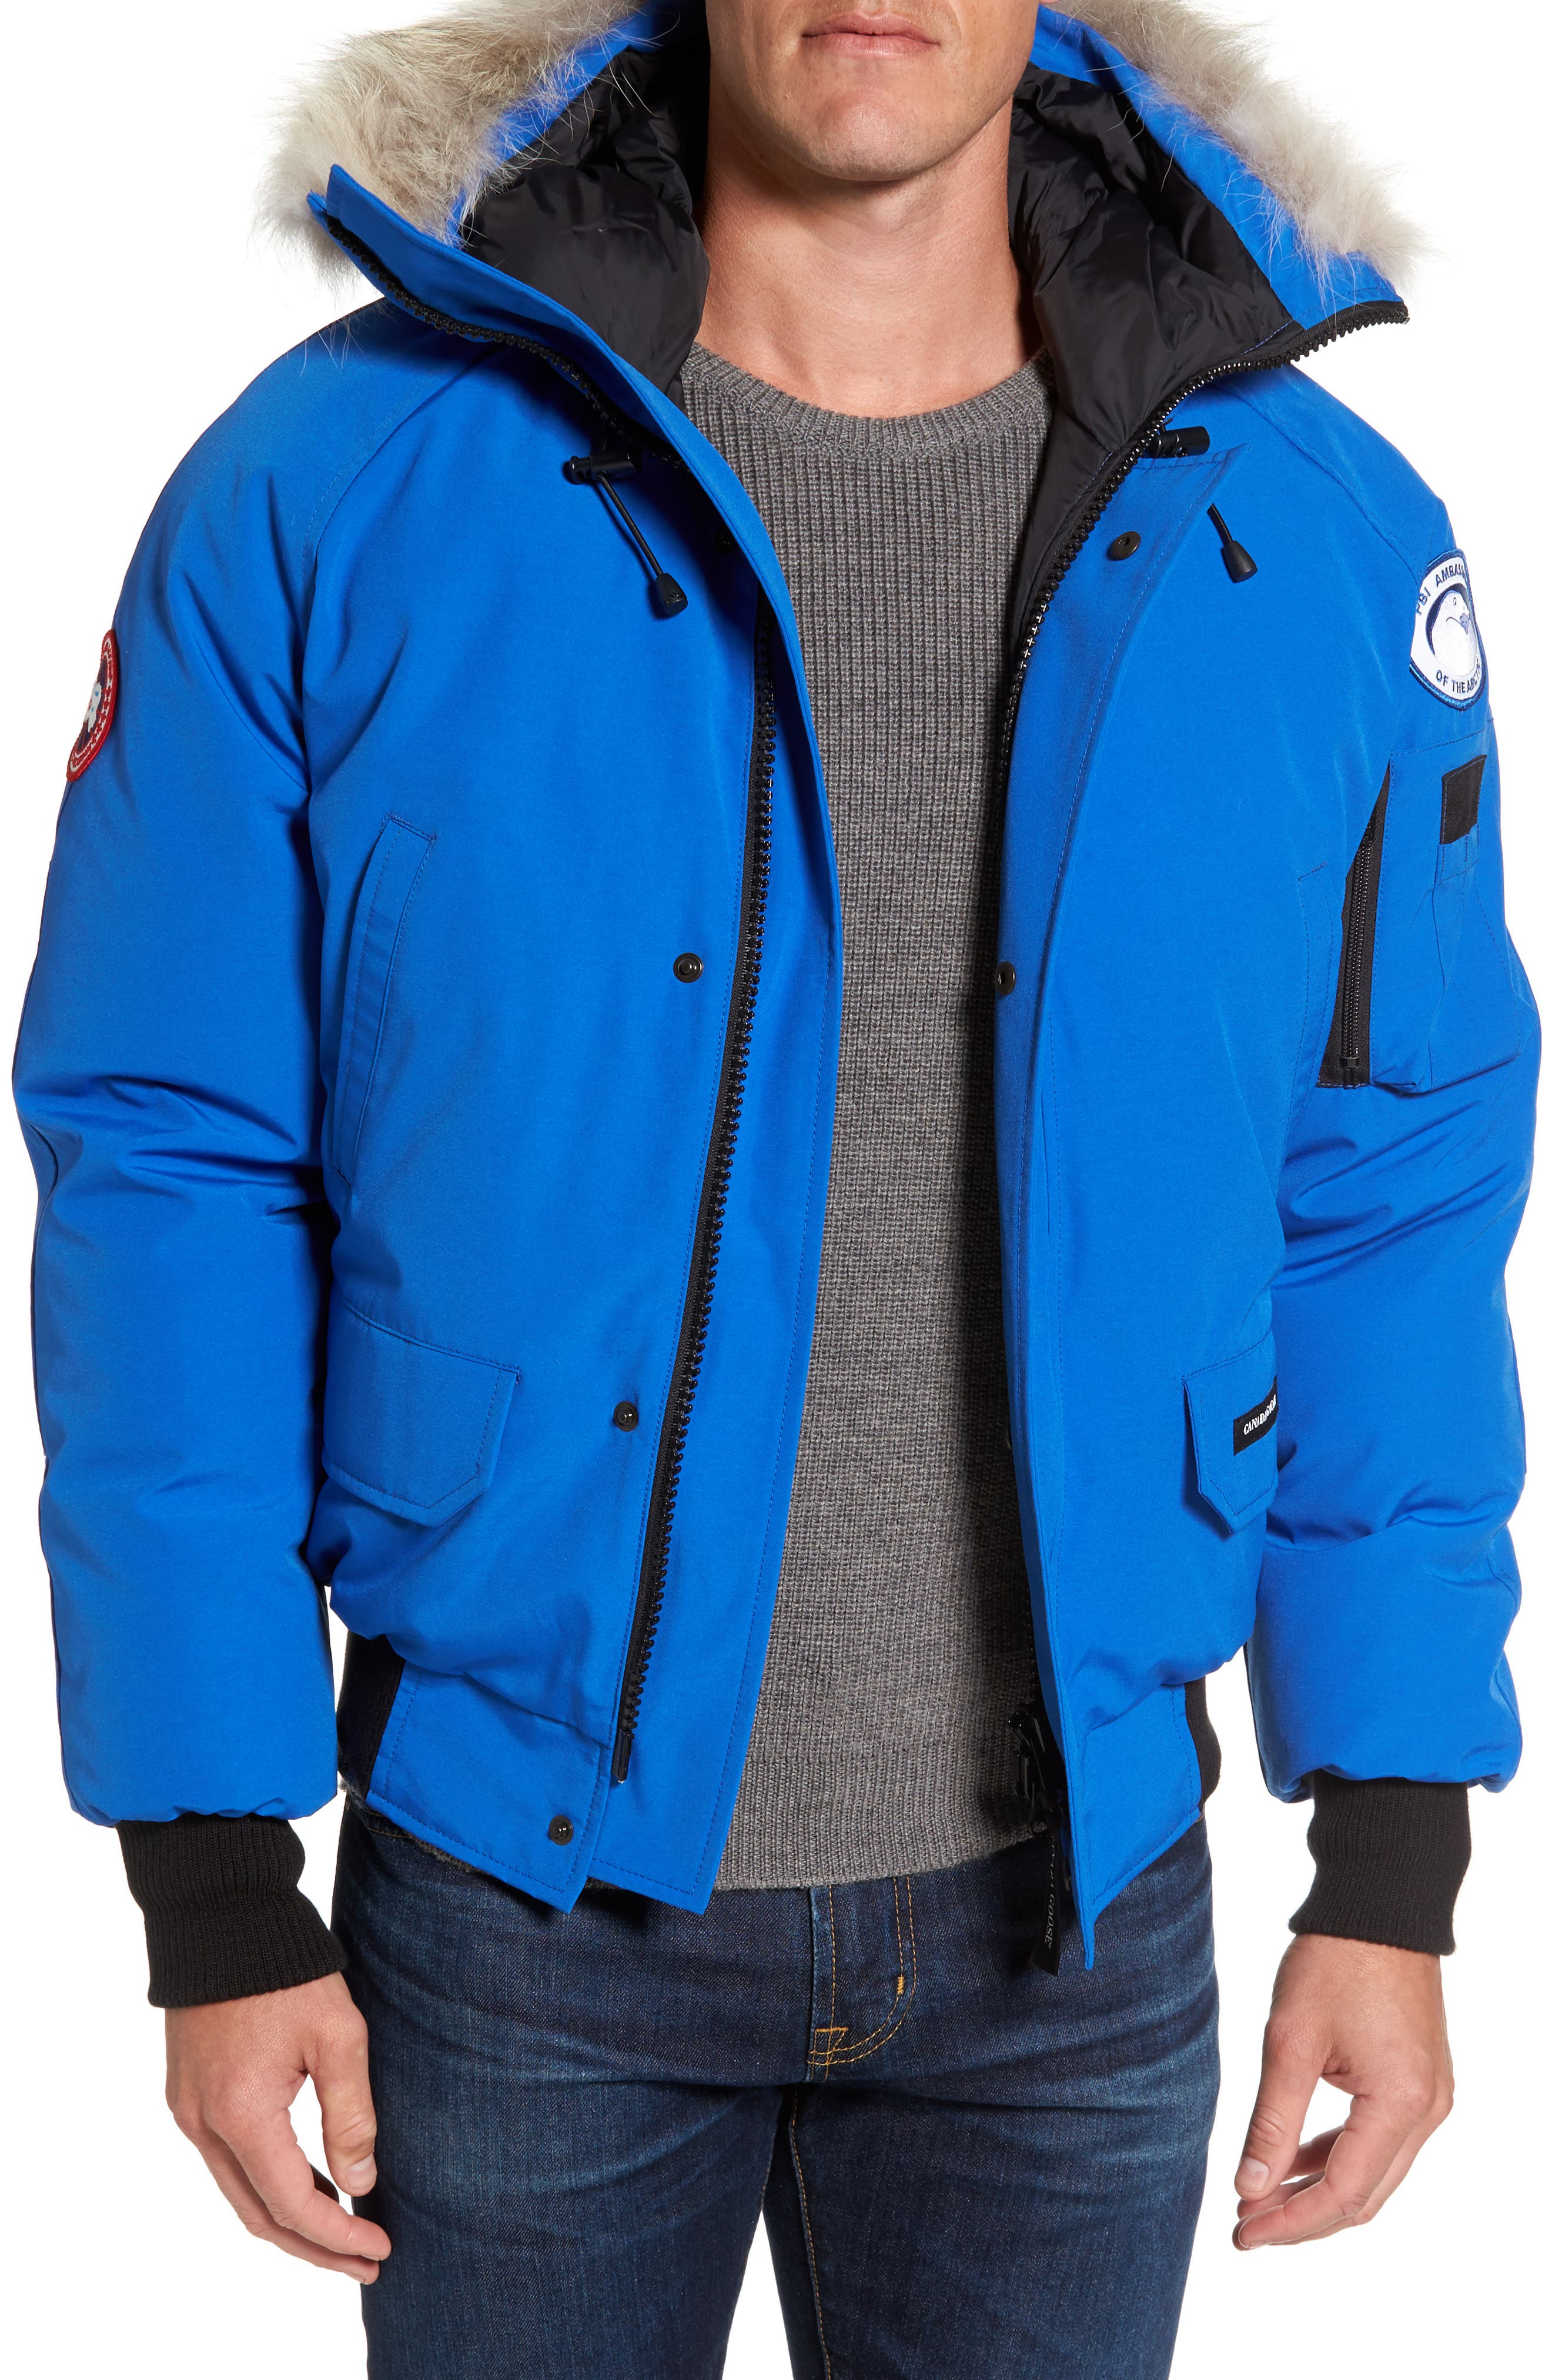 PBI Chilliwack Down Bomber Jacket with Genuine Coyote Trim,                         Main,                         color, Royal Blue